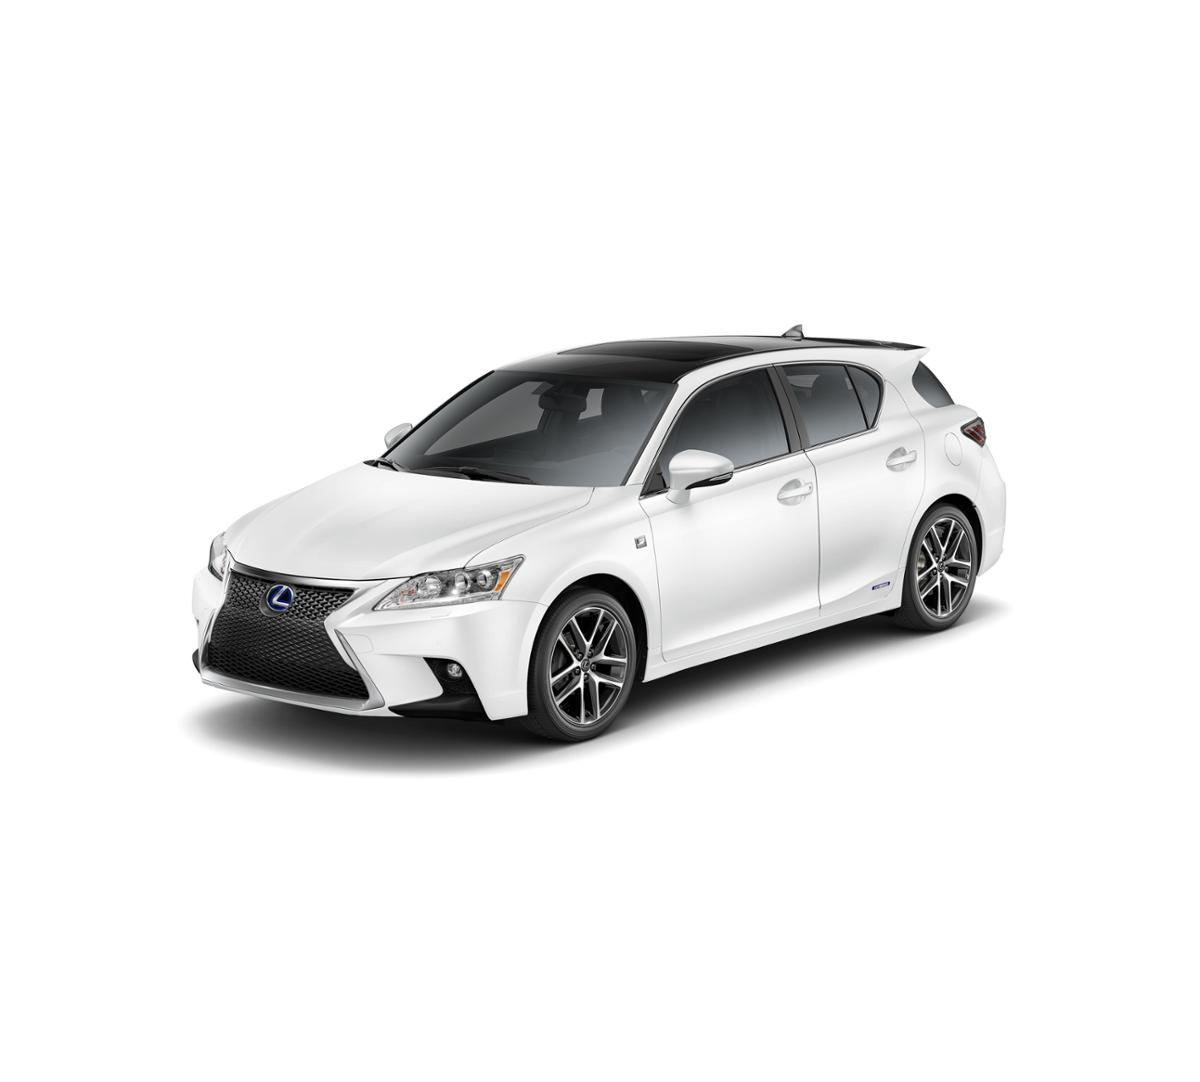 2017 Lexus CT 200h Vehicle Photo in Santa Monica, CA 90404